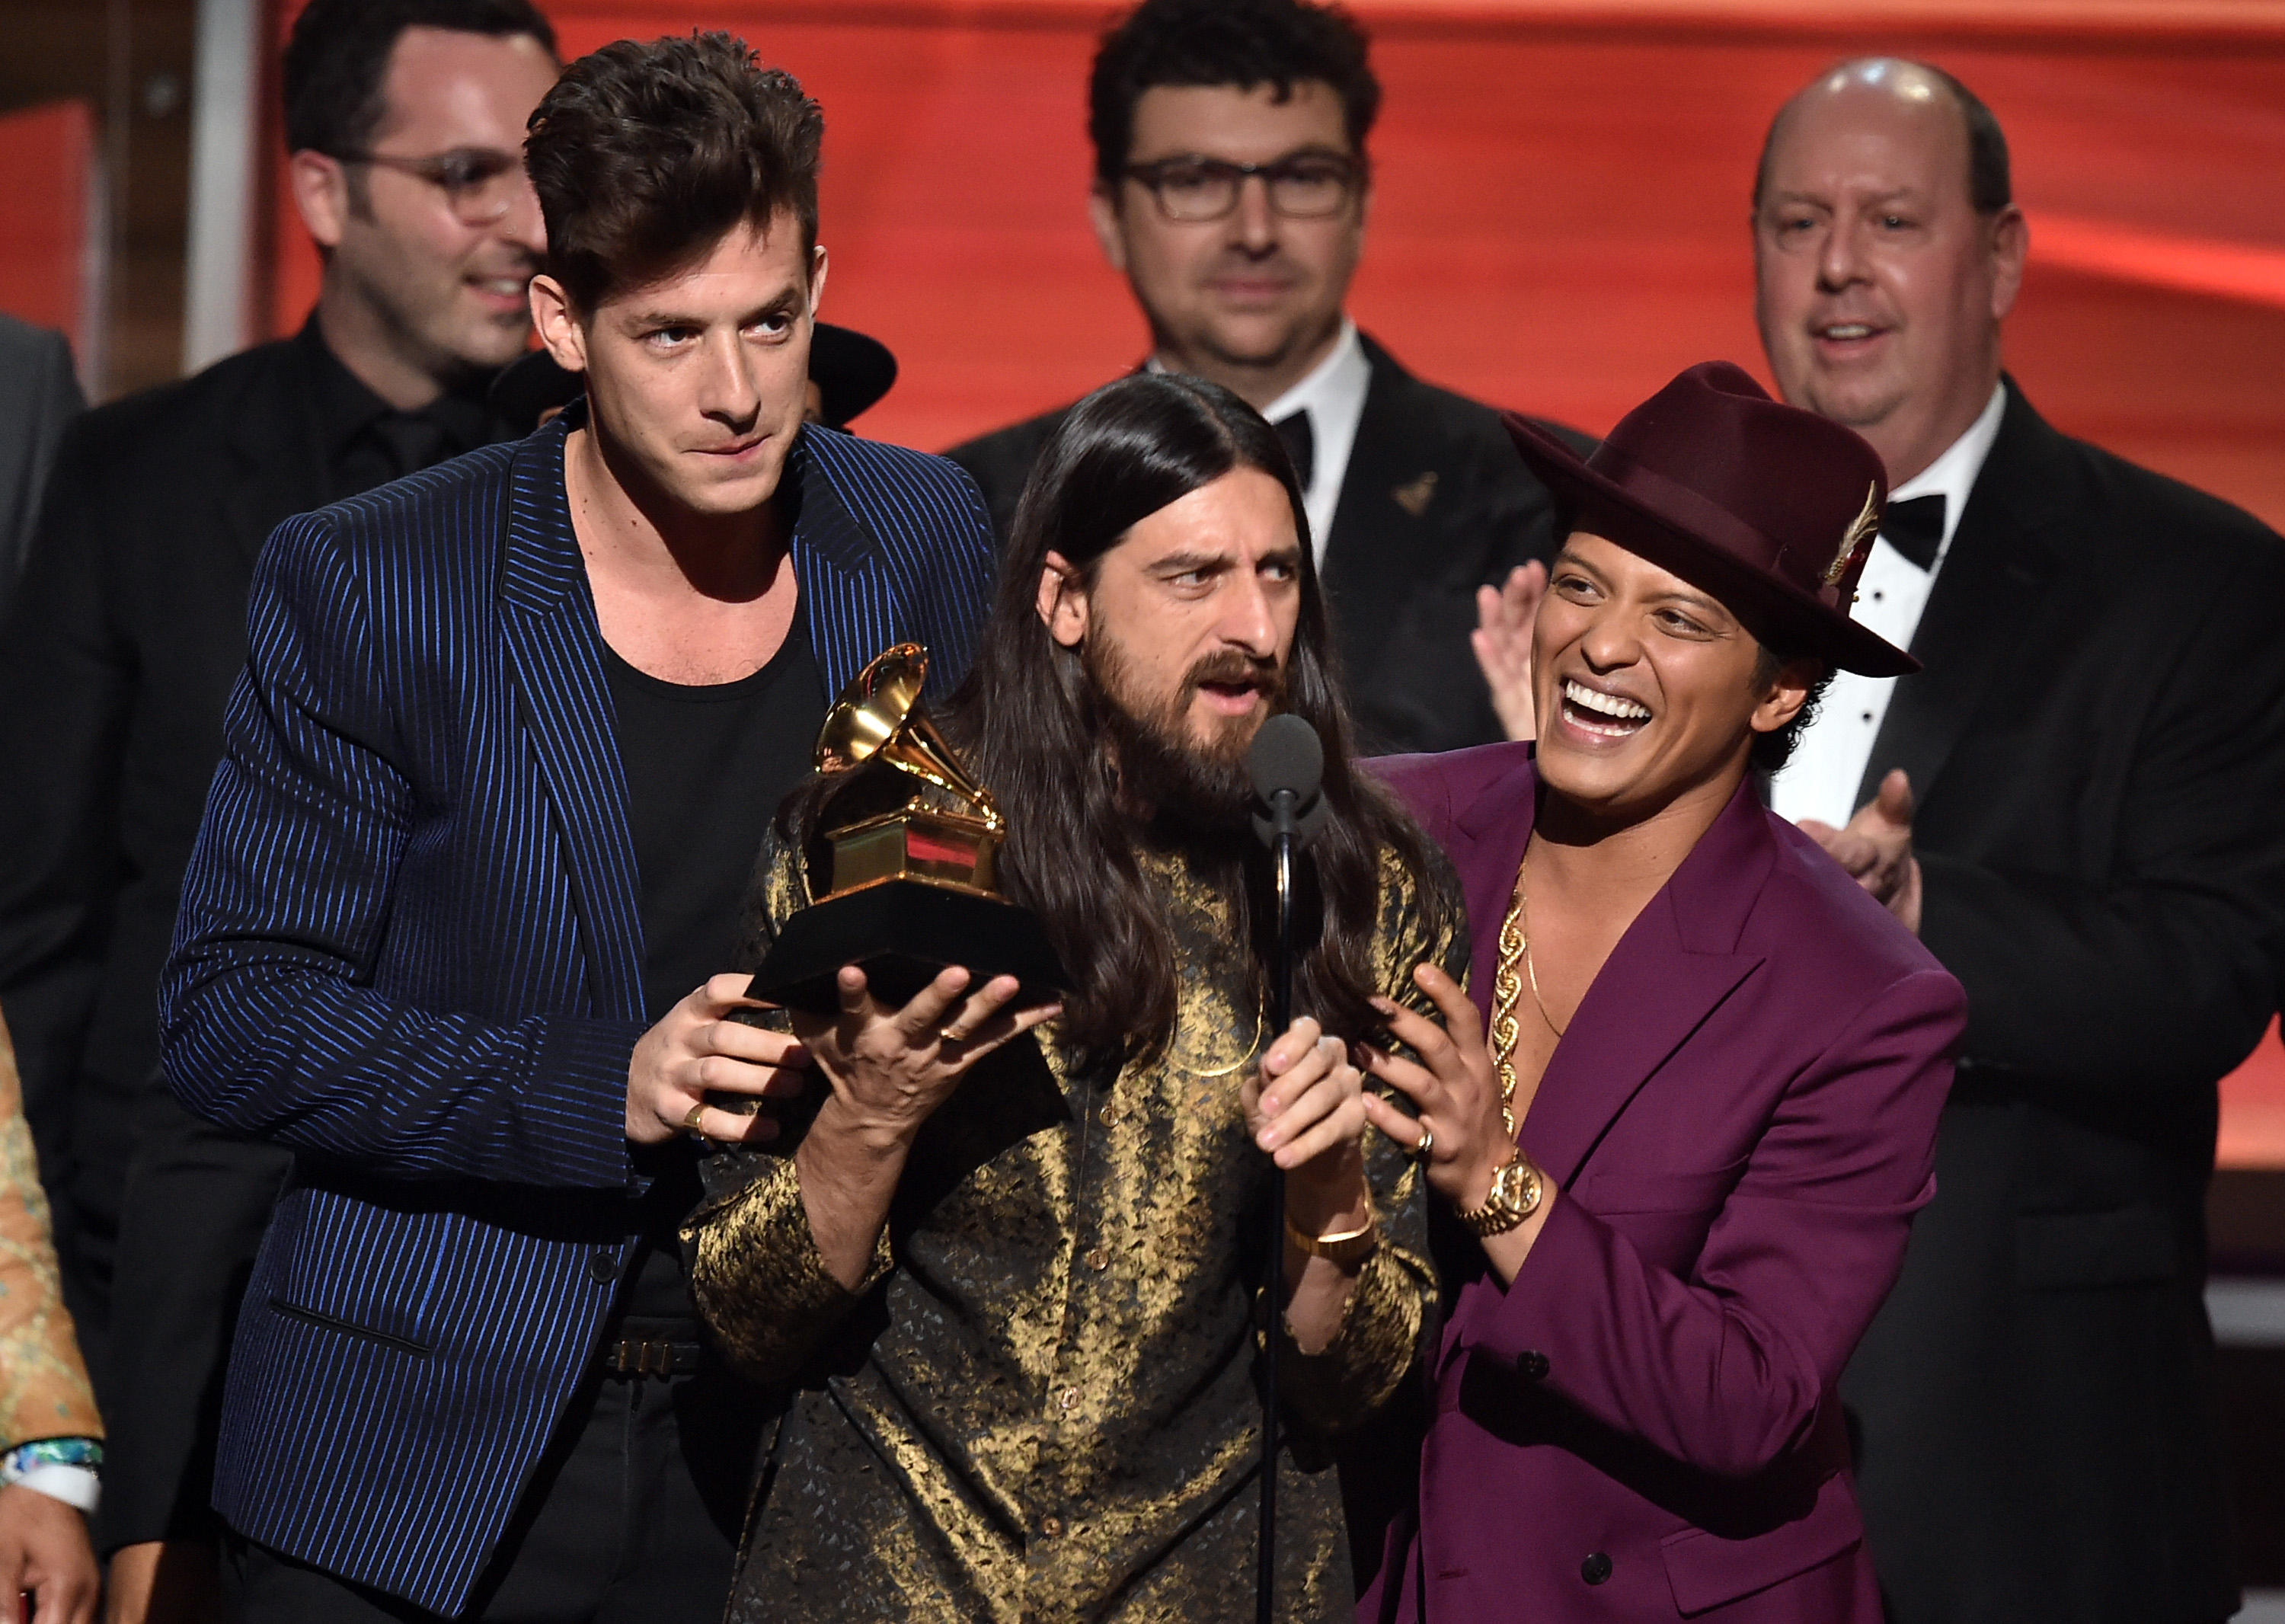 From left: Mark Ronson, Jeff Bhasker, and Bruno Mars accept  Record Of The Year  during the 58th GRAMMY Awards at Staples Center on Feb. 15, 2016 in Los Angeles.